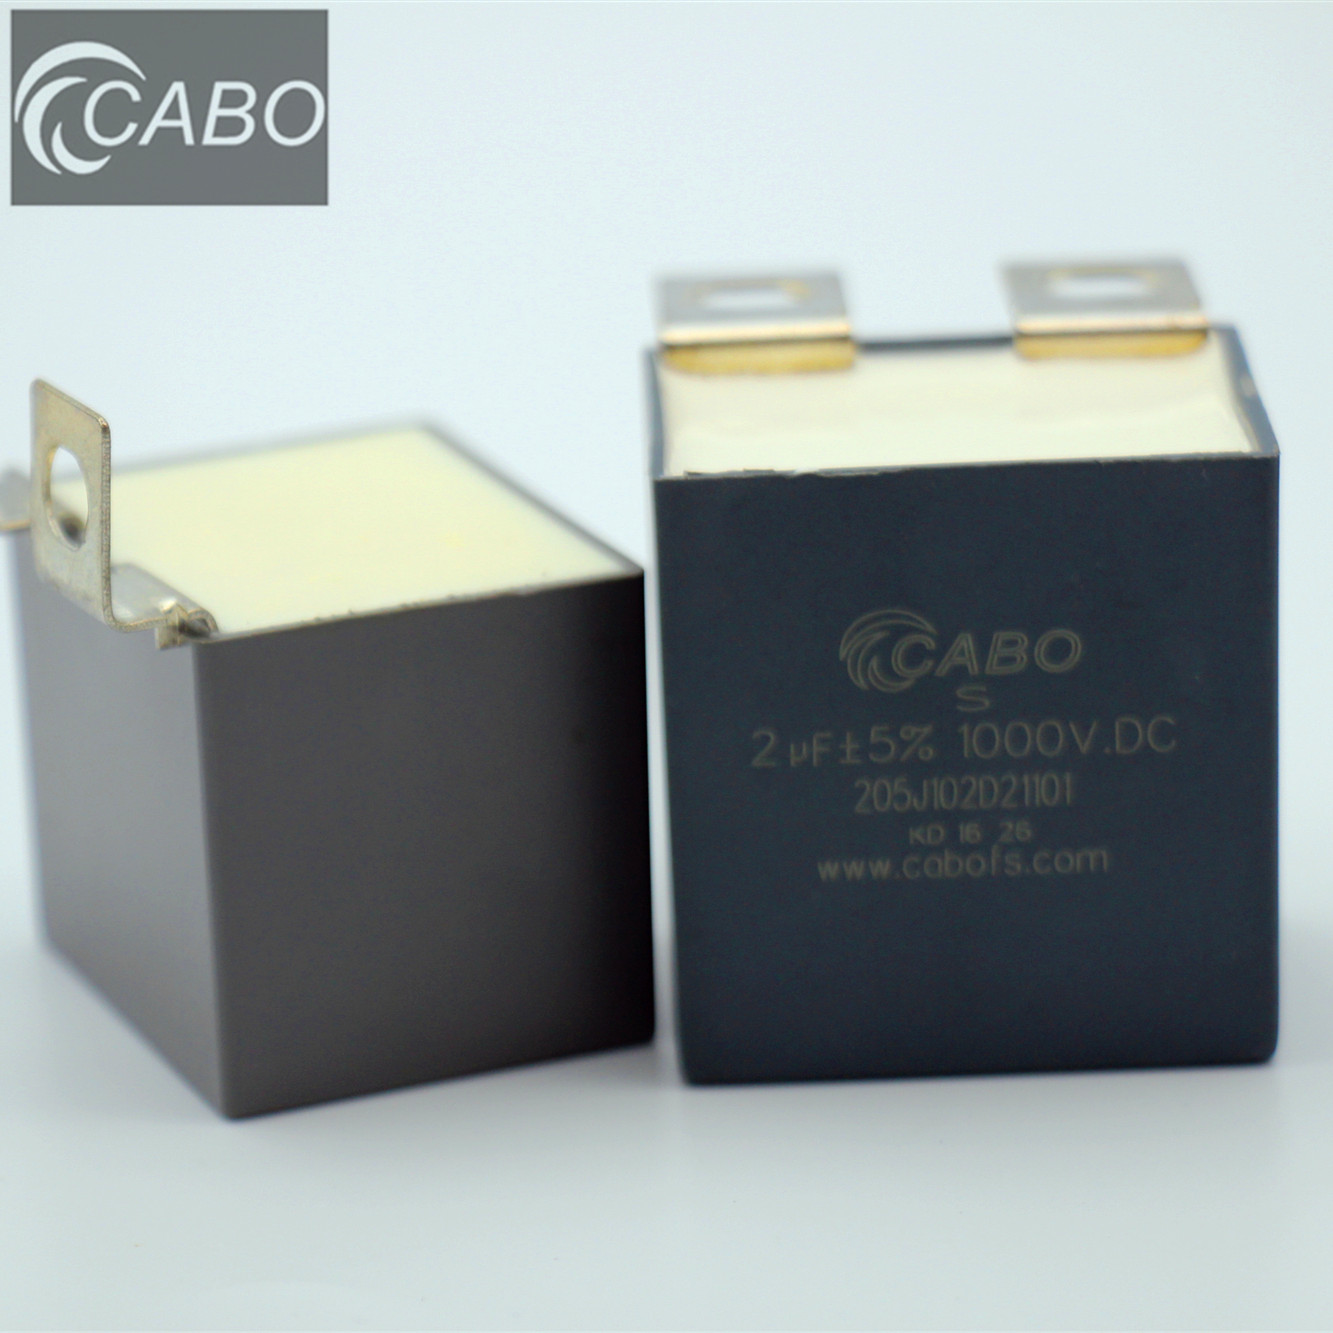 CABO S series snubber capacitor